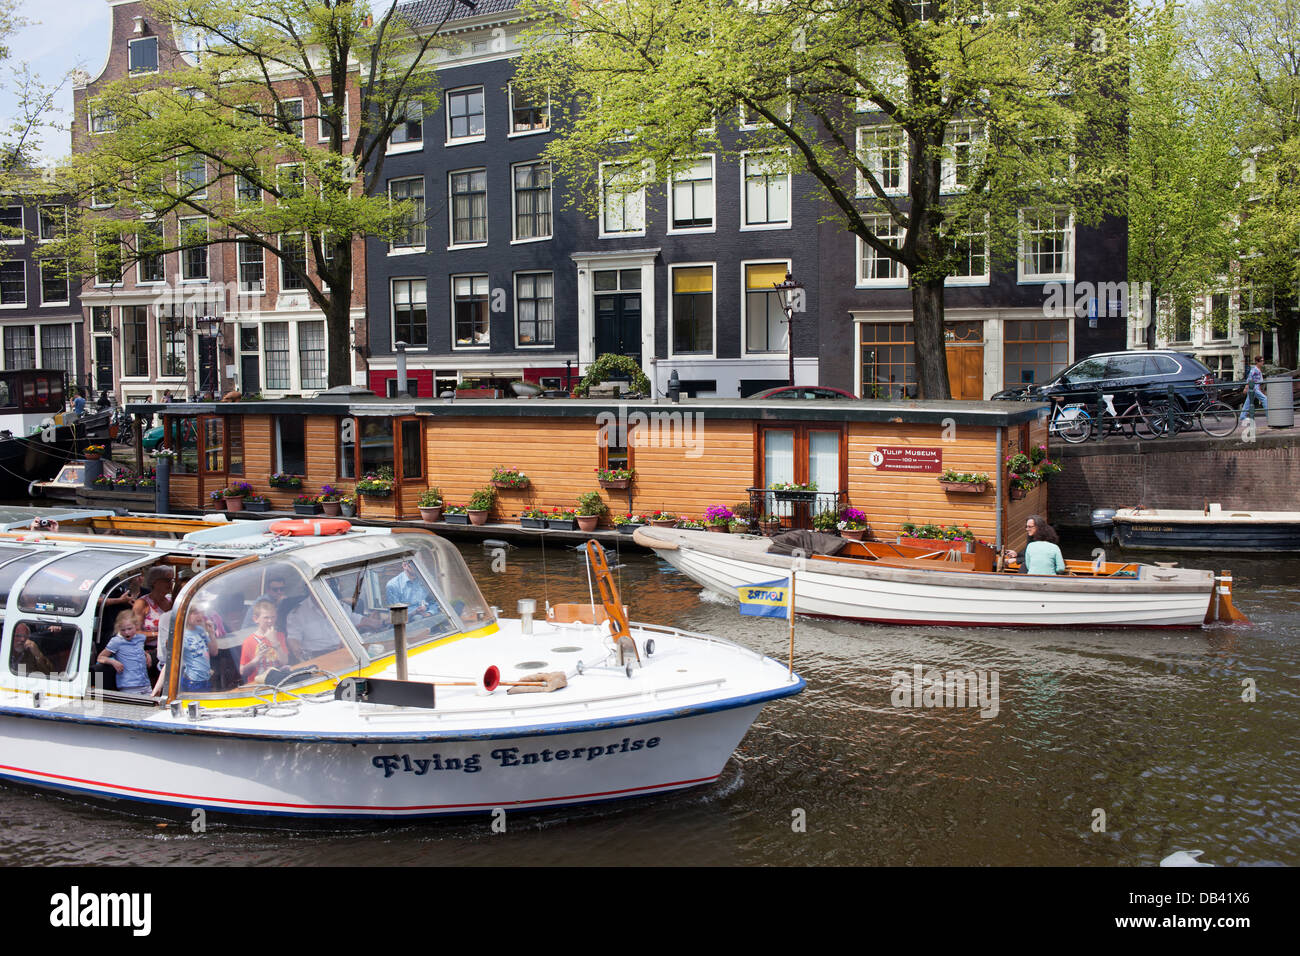 Boats, houseboat and apartment buildings on Prinsengracht canal in Amsterdam, Netherlands. - Stock Image